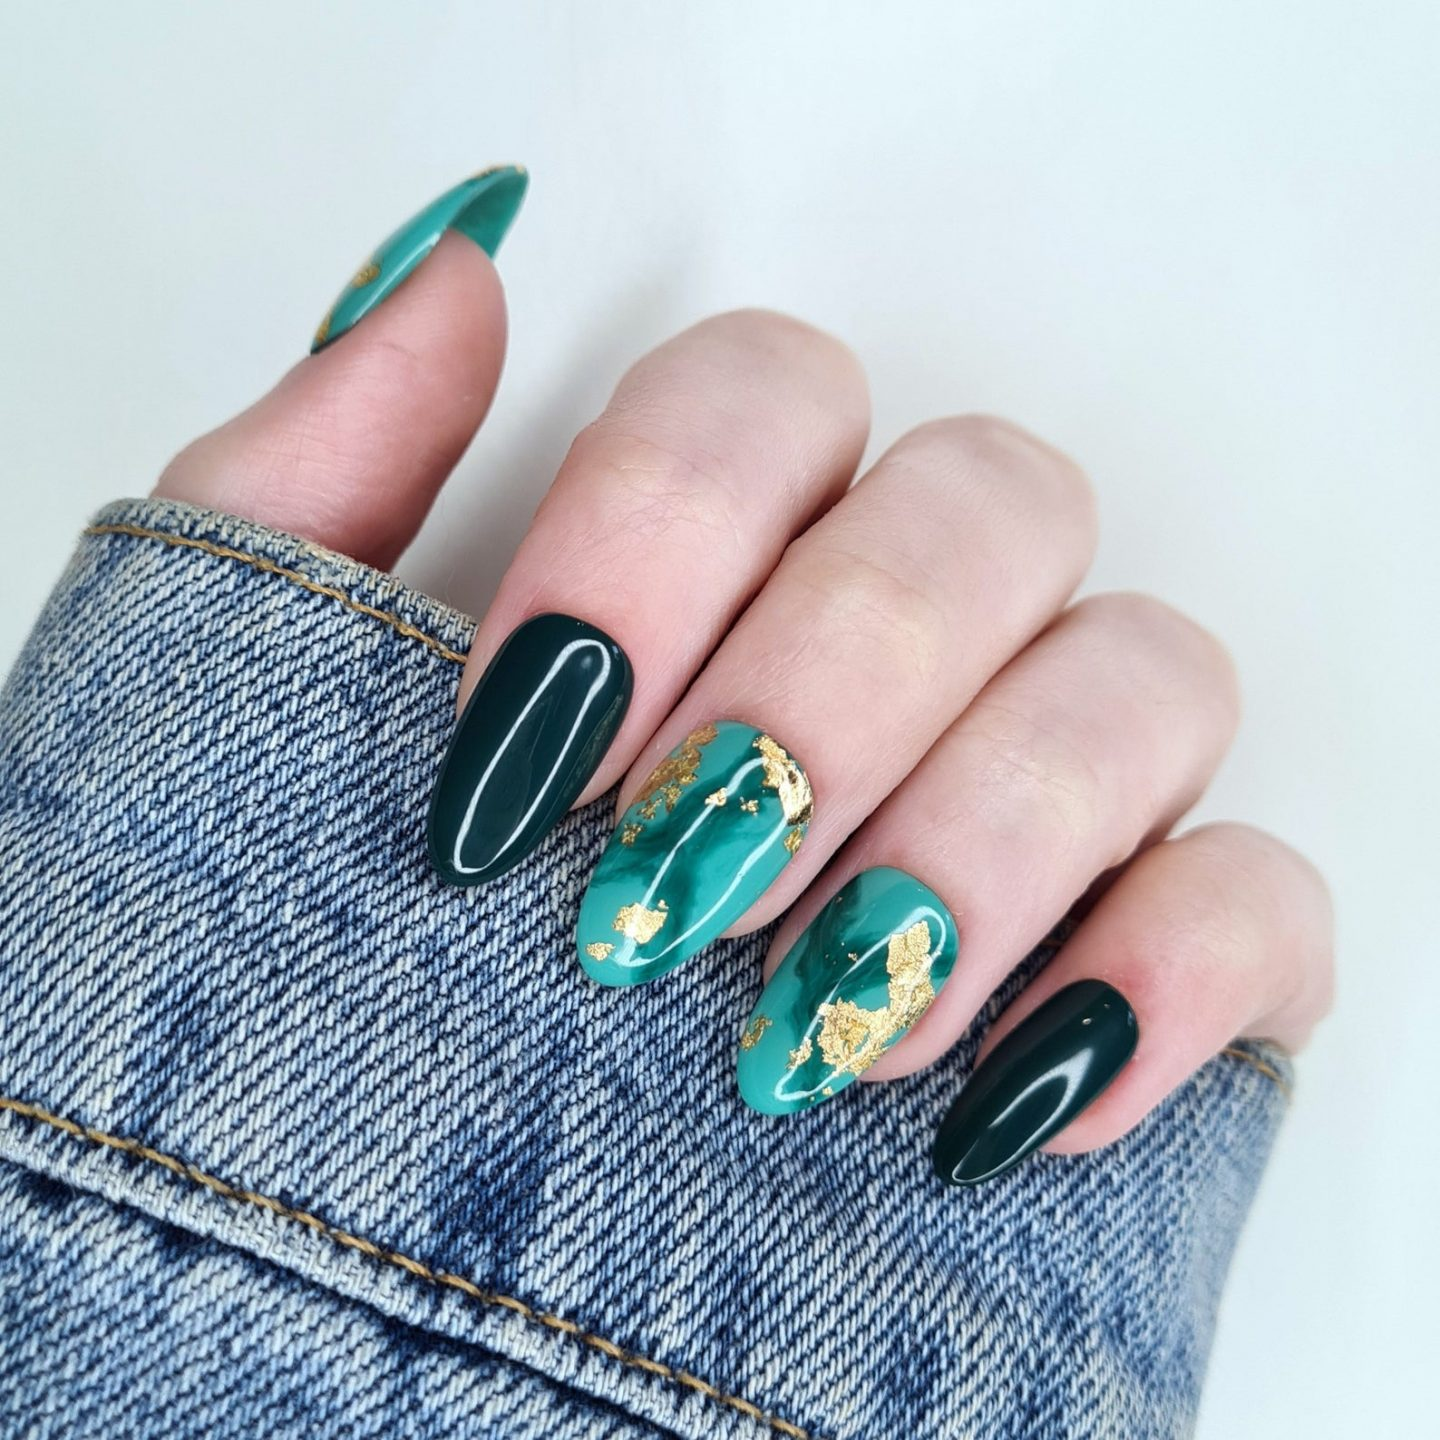 Emerald green marble nail design with gold foil